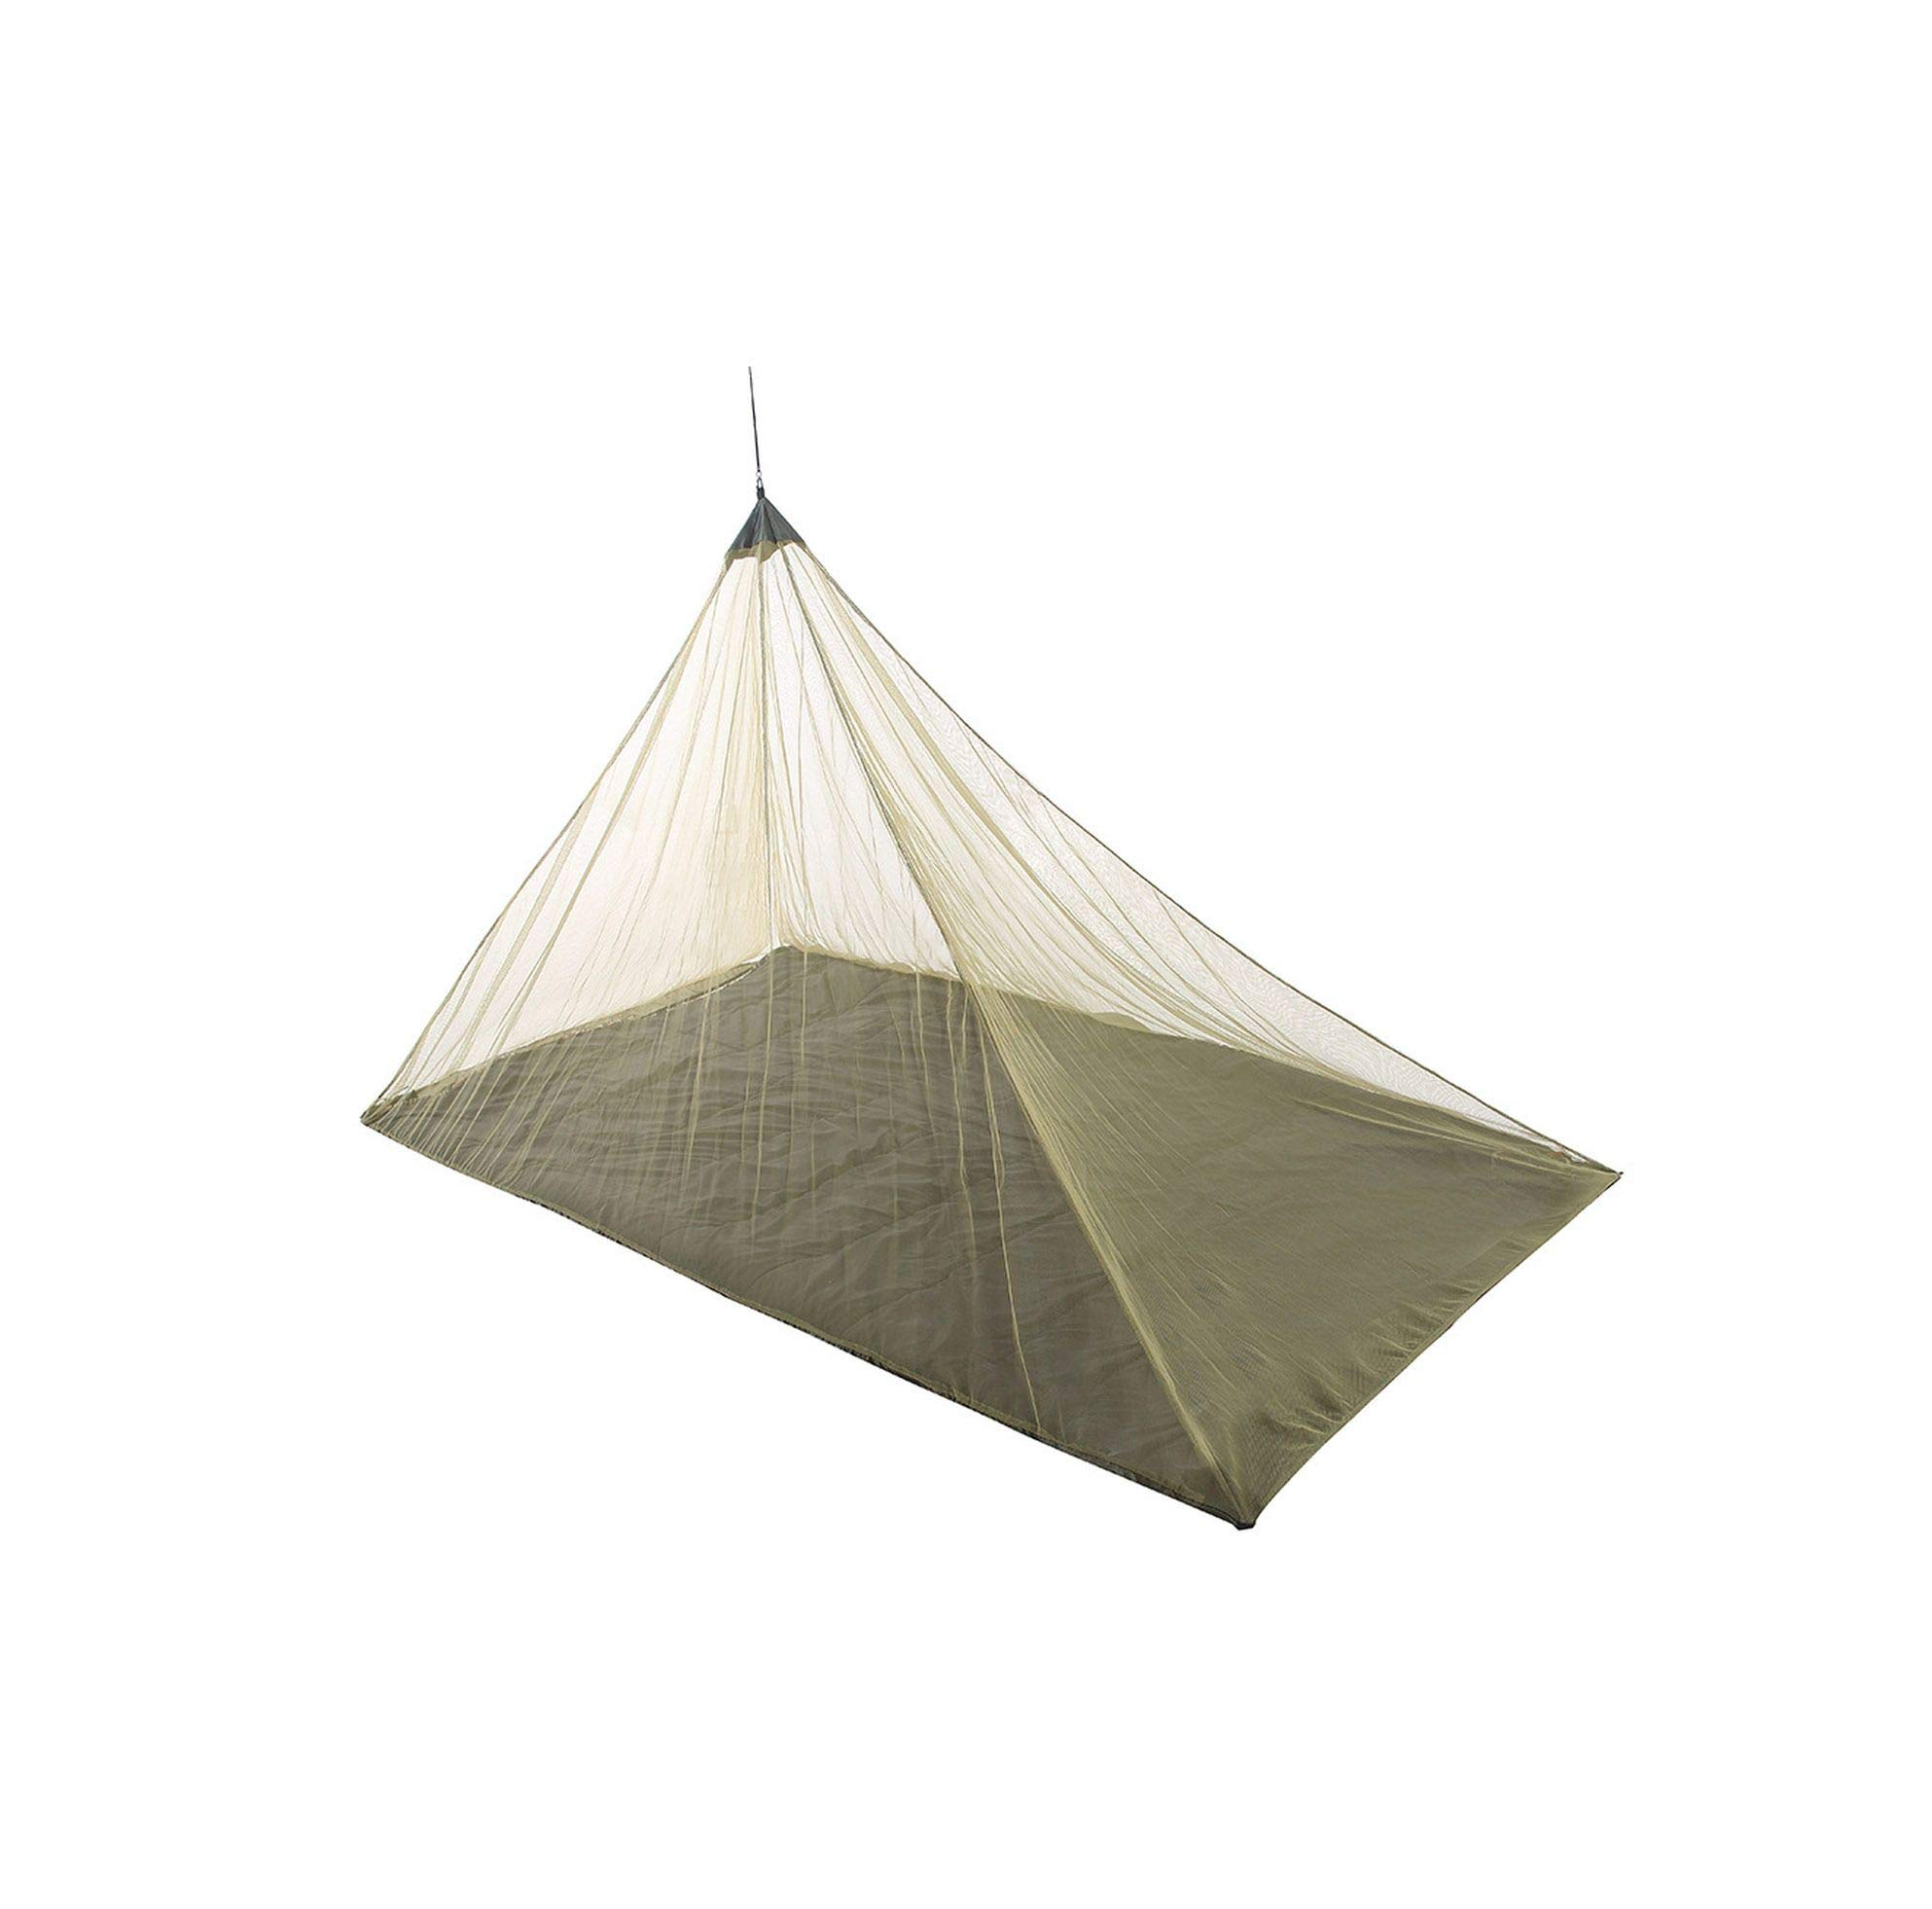 FAT BABY Mosquito Net Perfect Outdoor Backpacking Accessory for Adults and Kids Moustiquaire Keep Insect Away Home Textile,Green,220X120X100CM